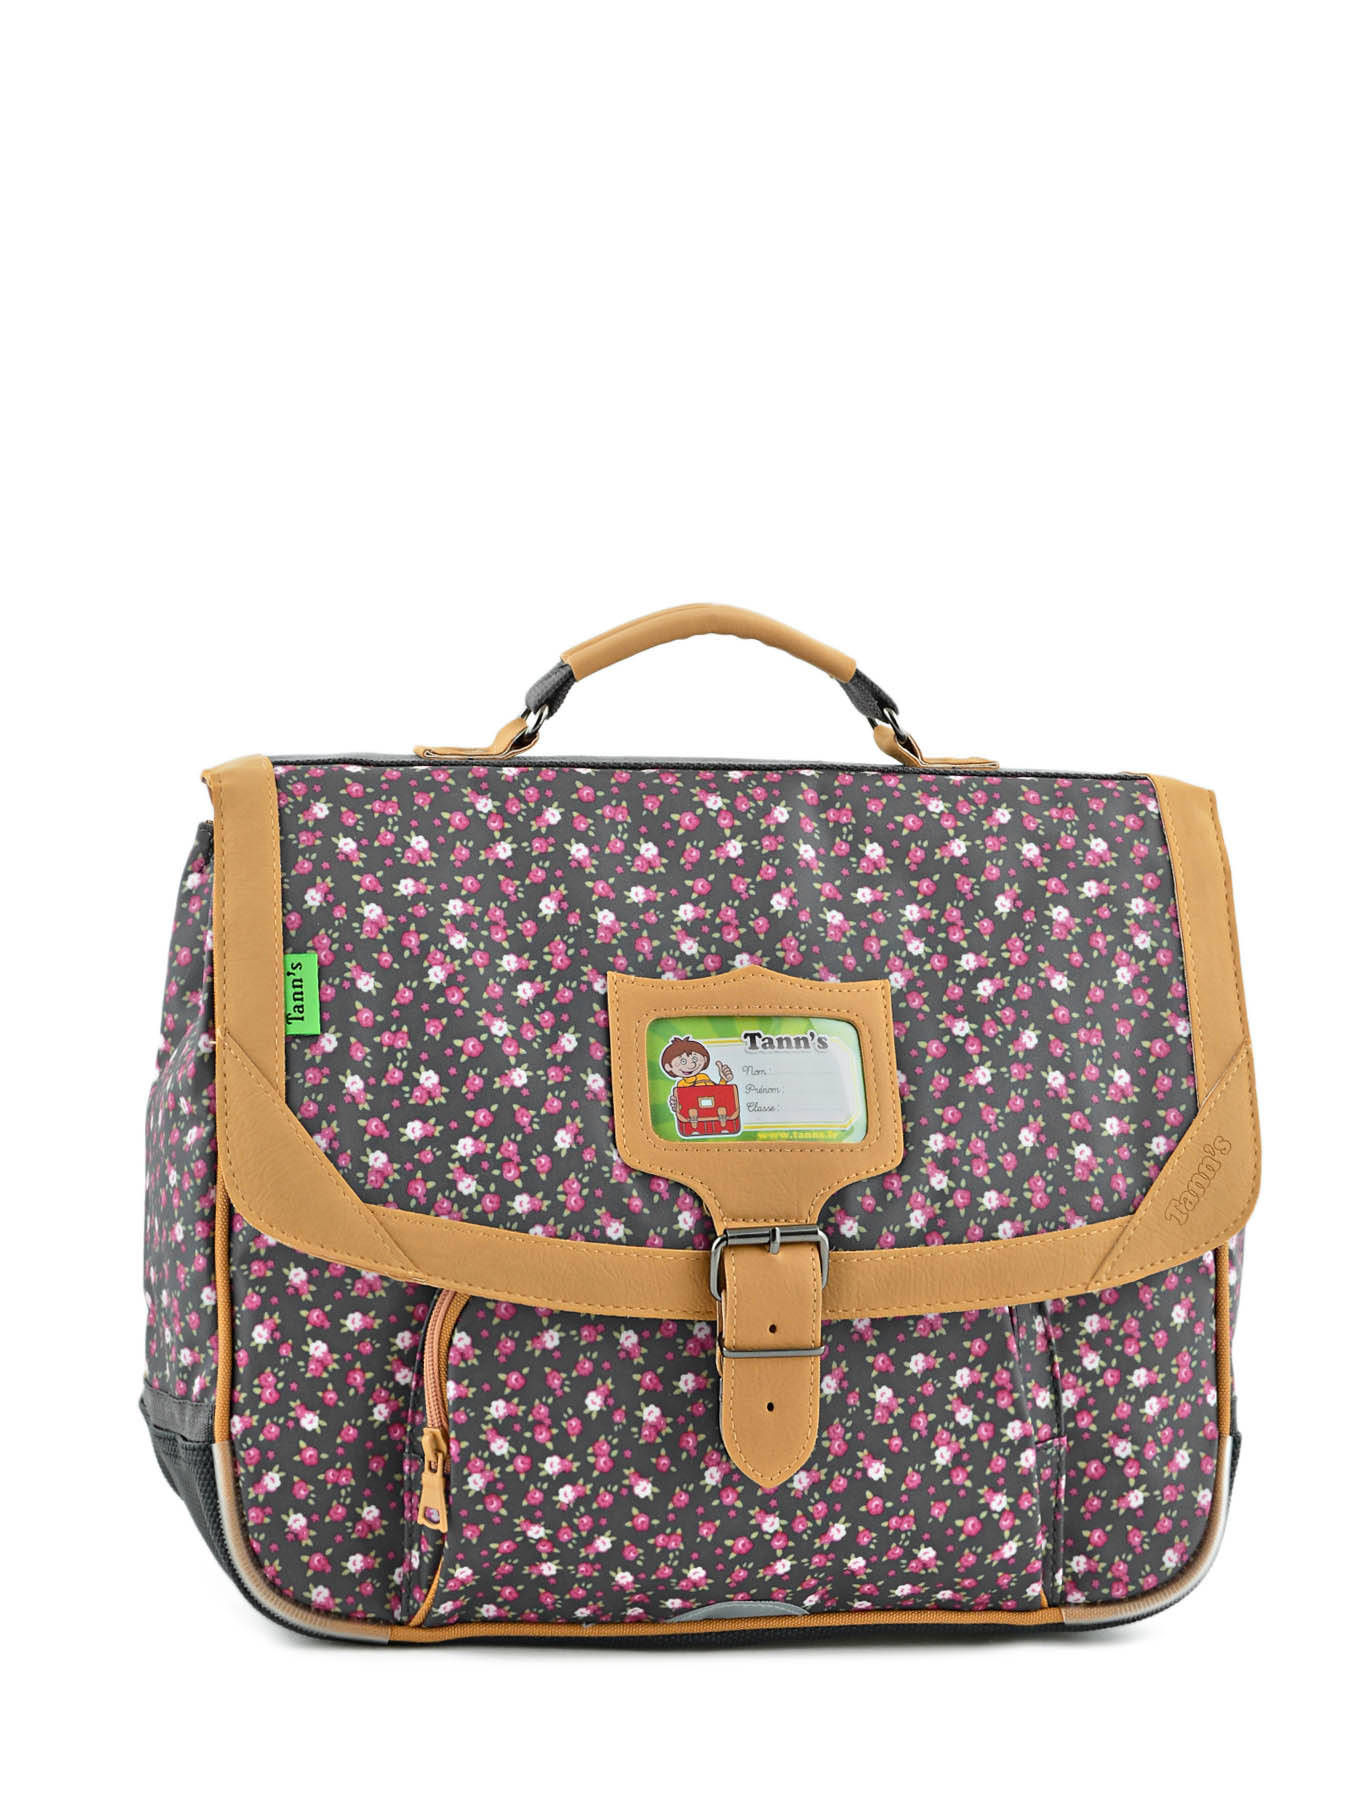 cartable tann's fille